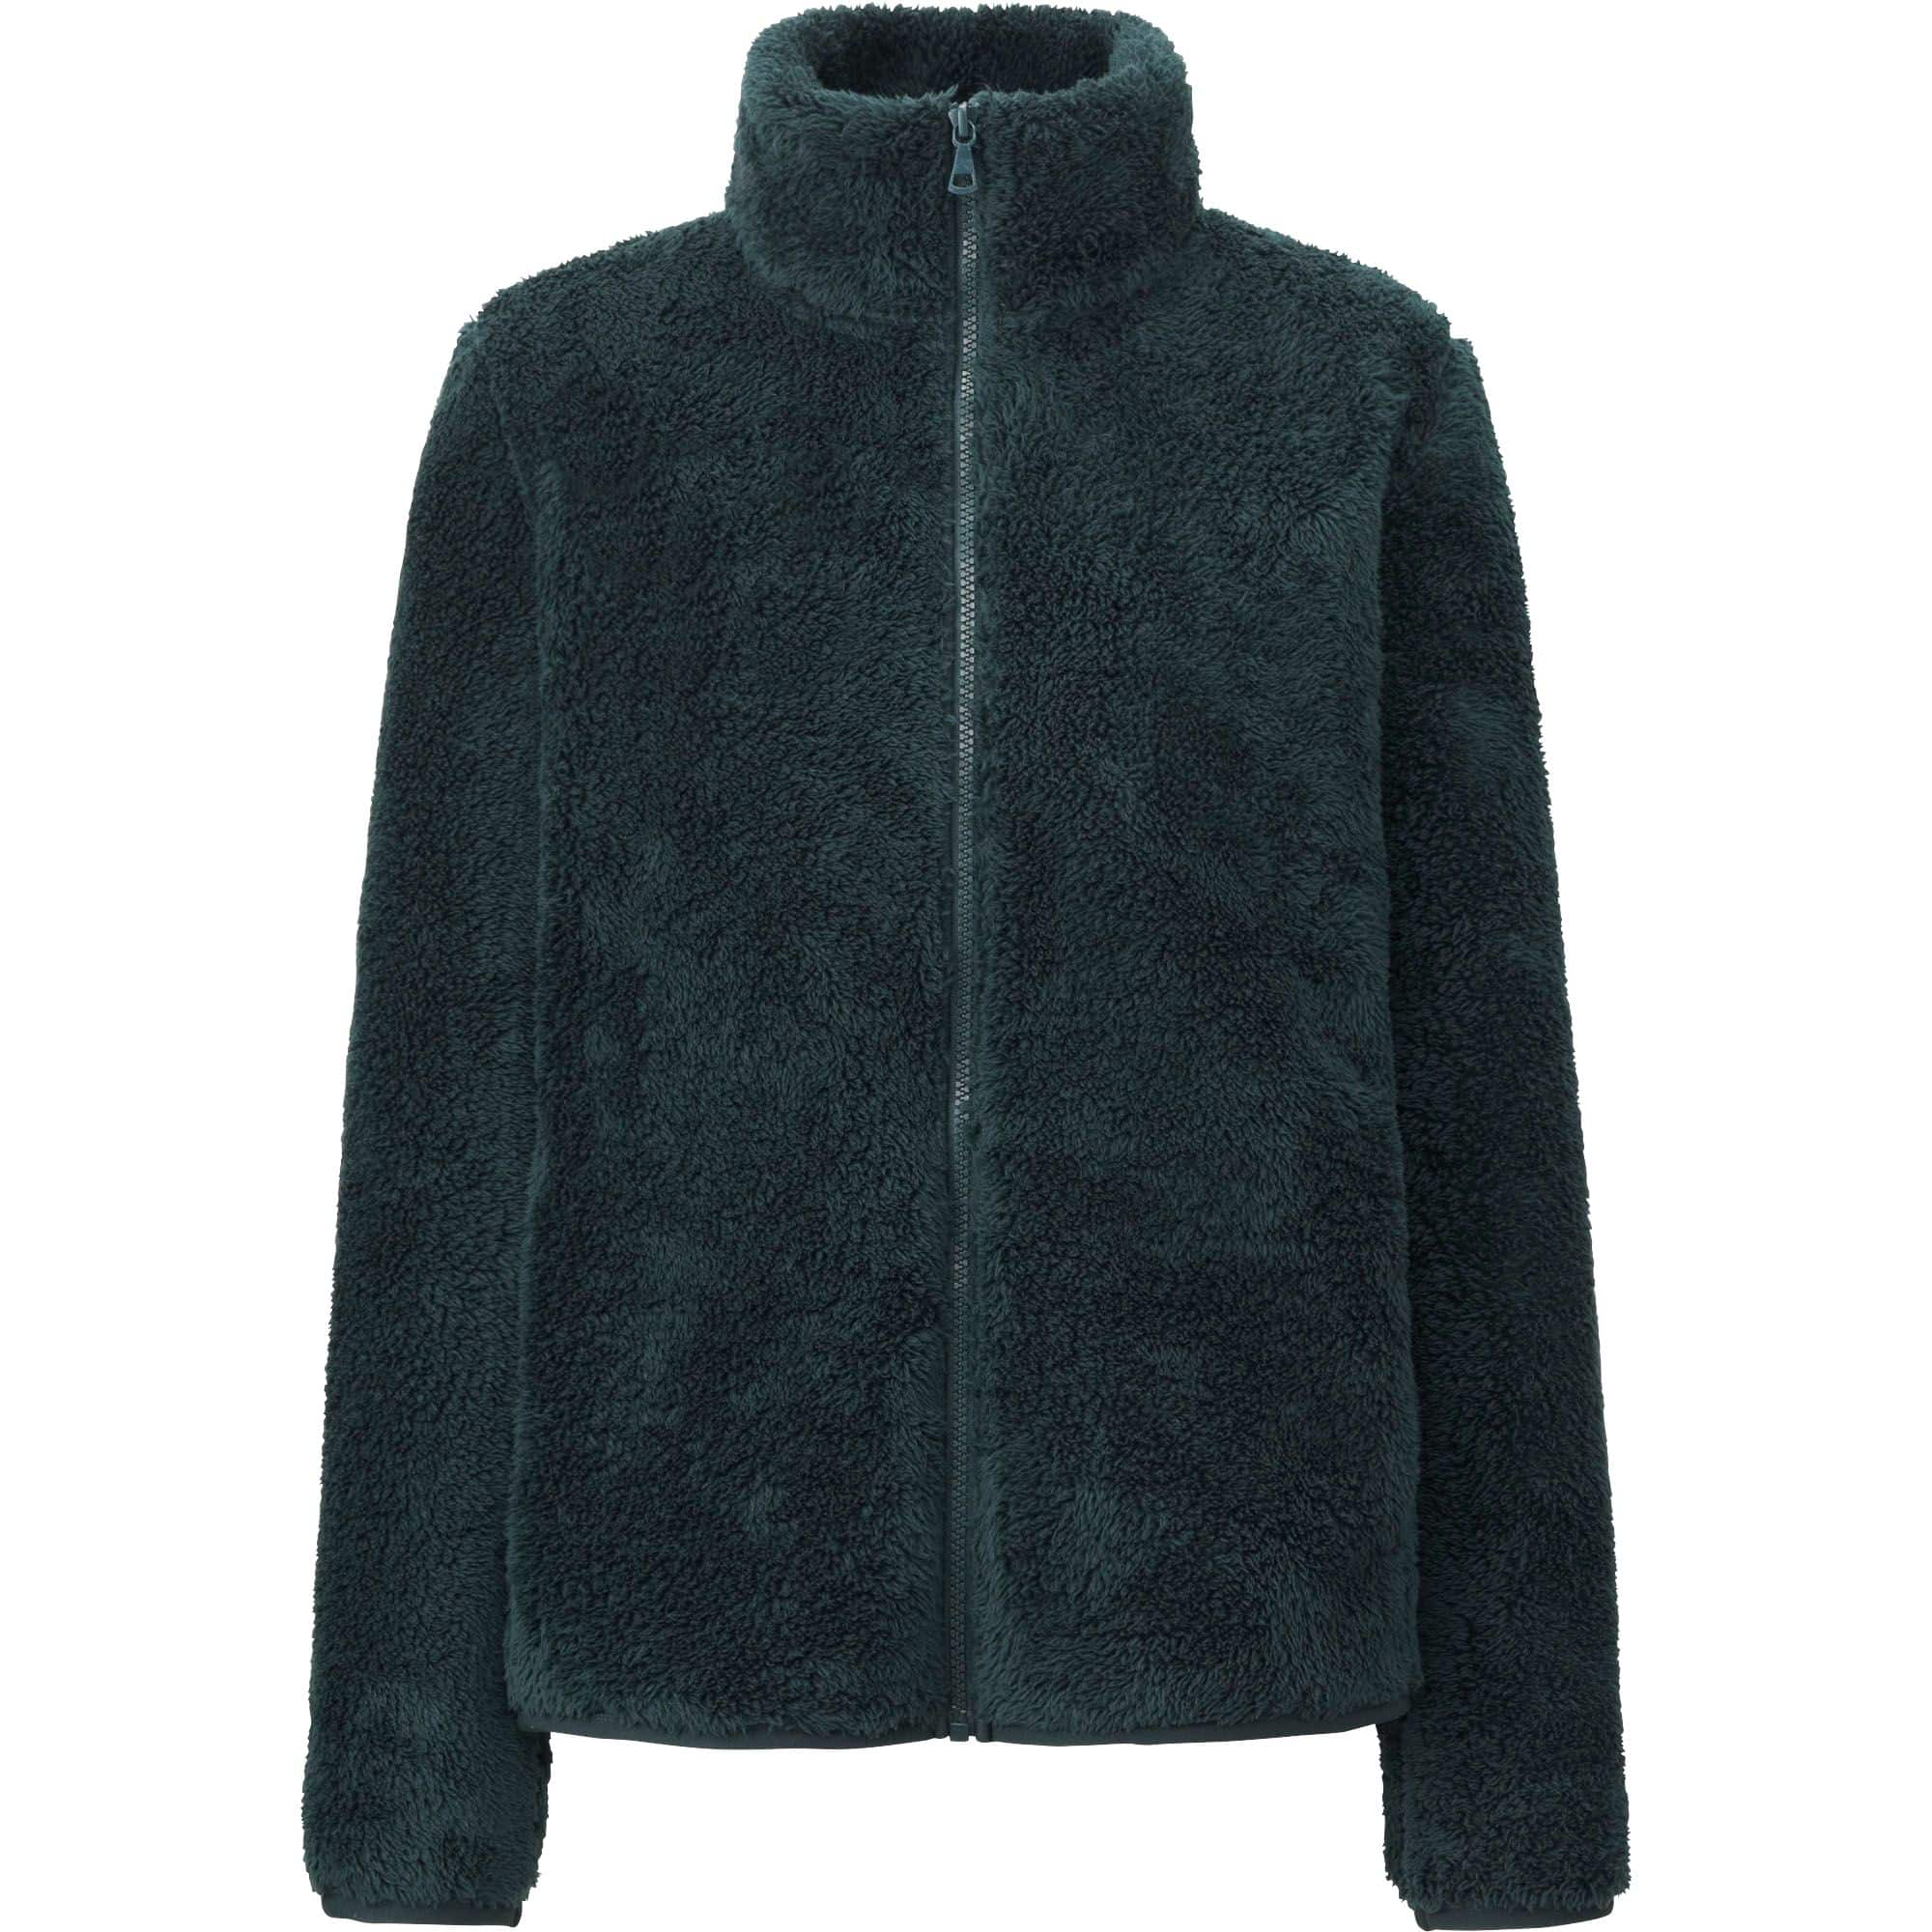 UNIQLO Fleece Jackets: Men's Full Zip or Women's Fluffy Yarn ...